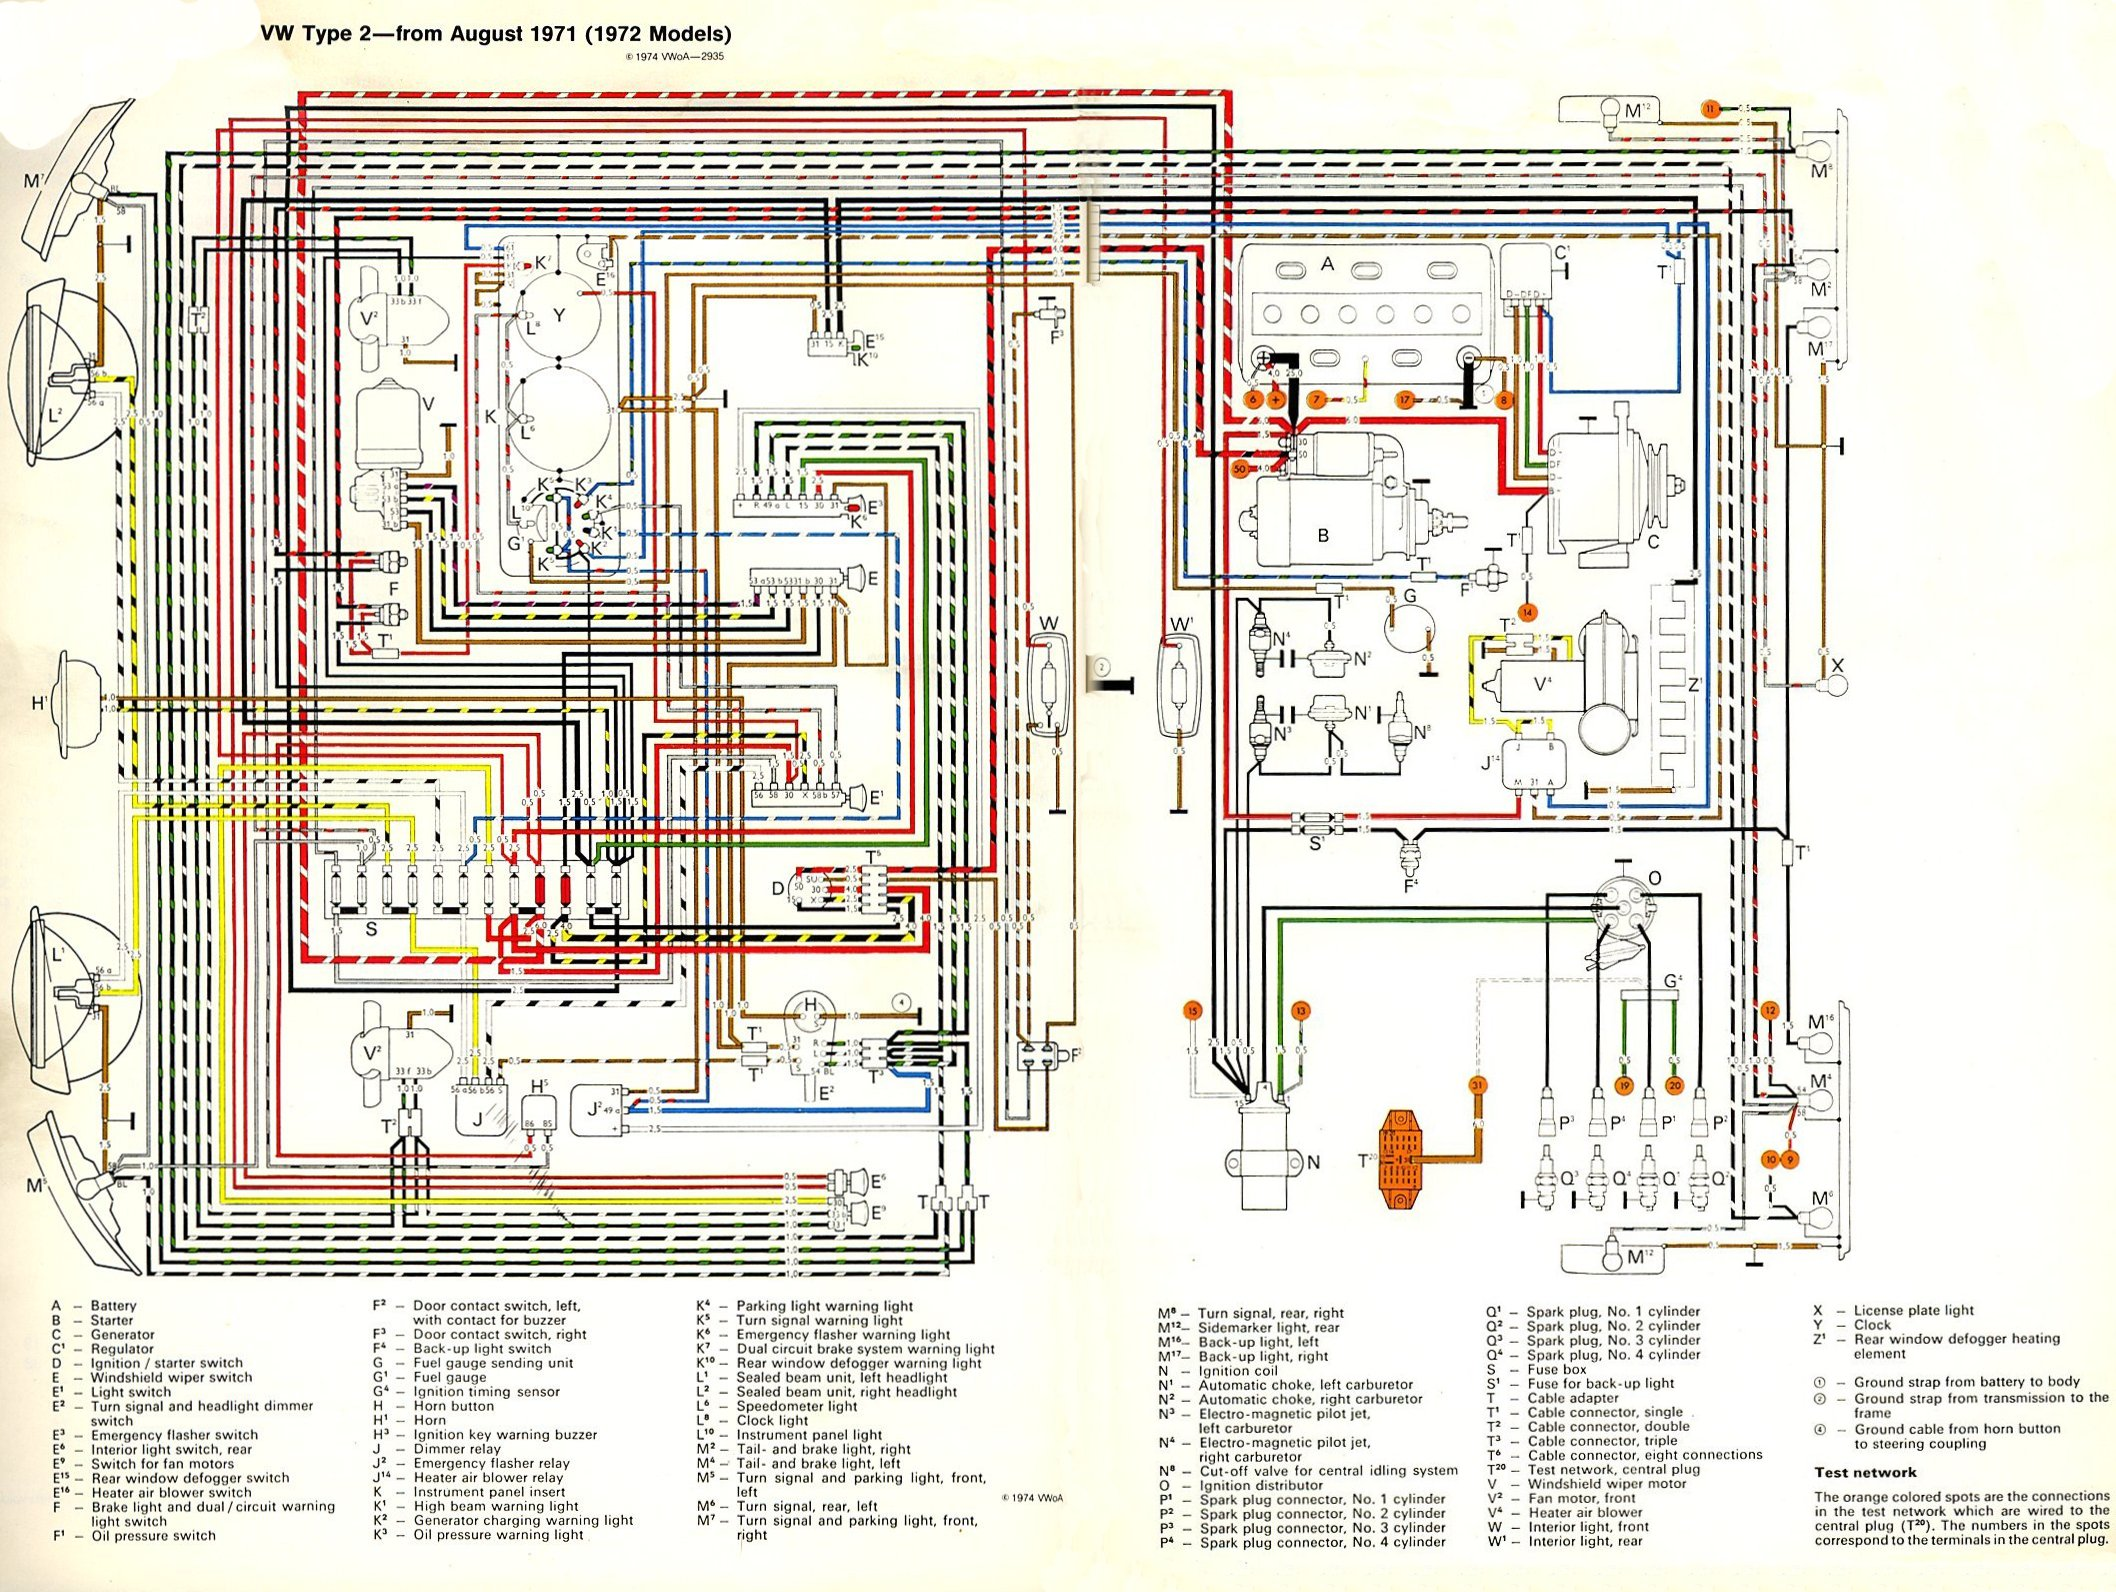 bus_1972_wiring 1977 porsche 911 wiring diagram wiring diagram simonand 1978 vw bus fuse box diagram at aneh.co